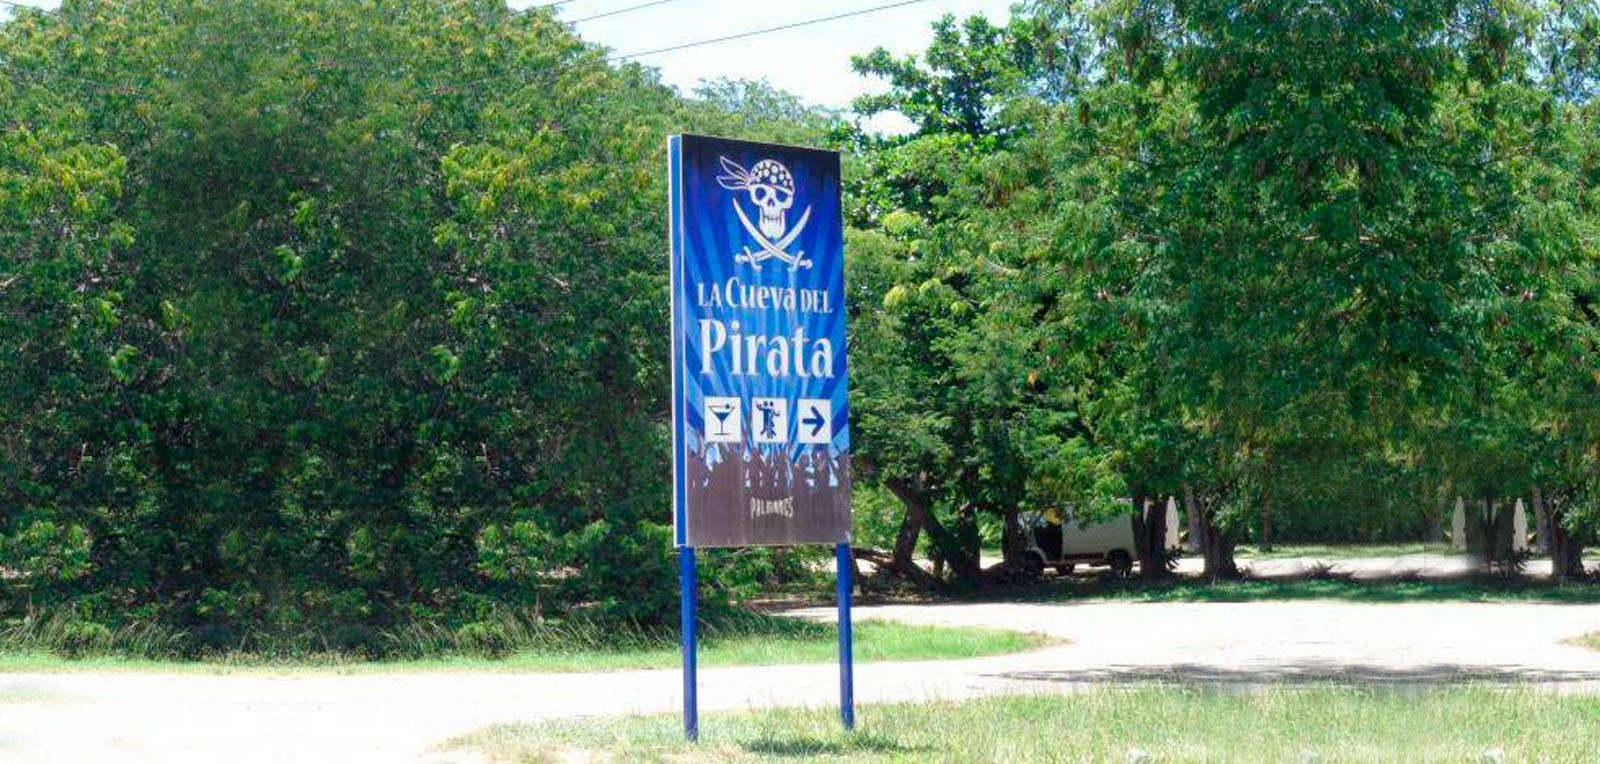 The Pirate's Cave, recreational cultural center in Varadero